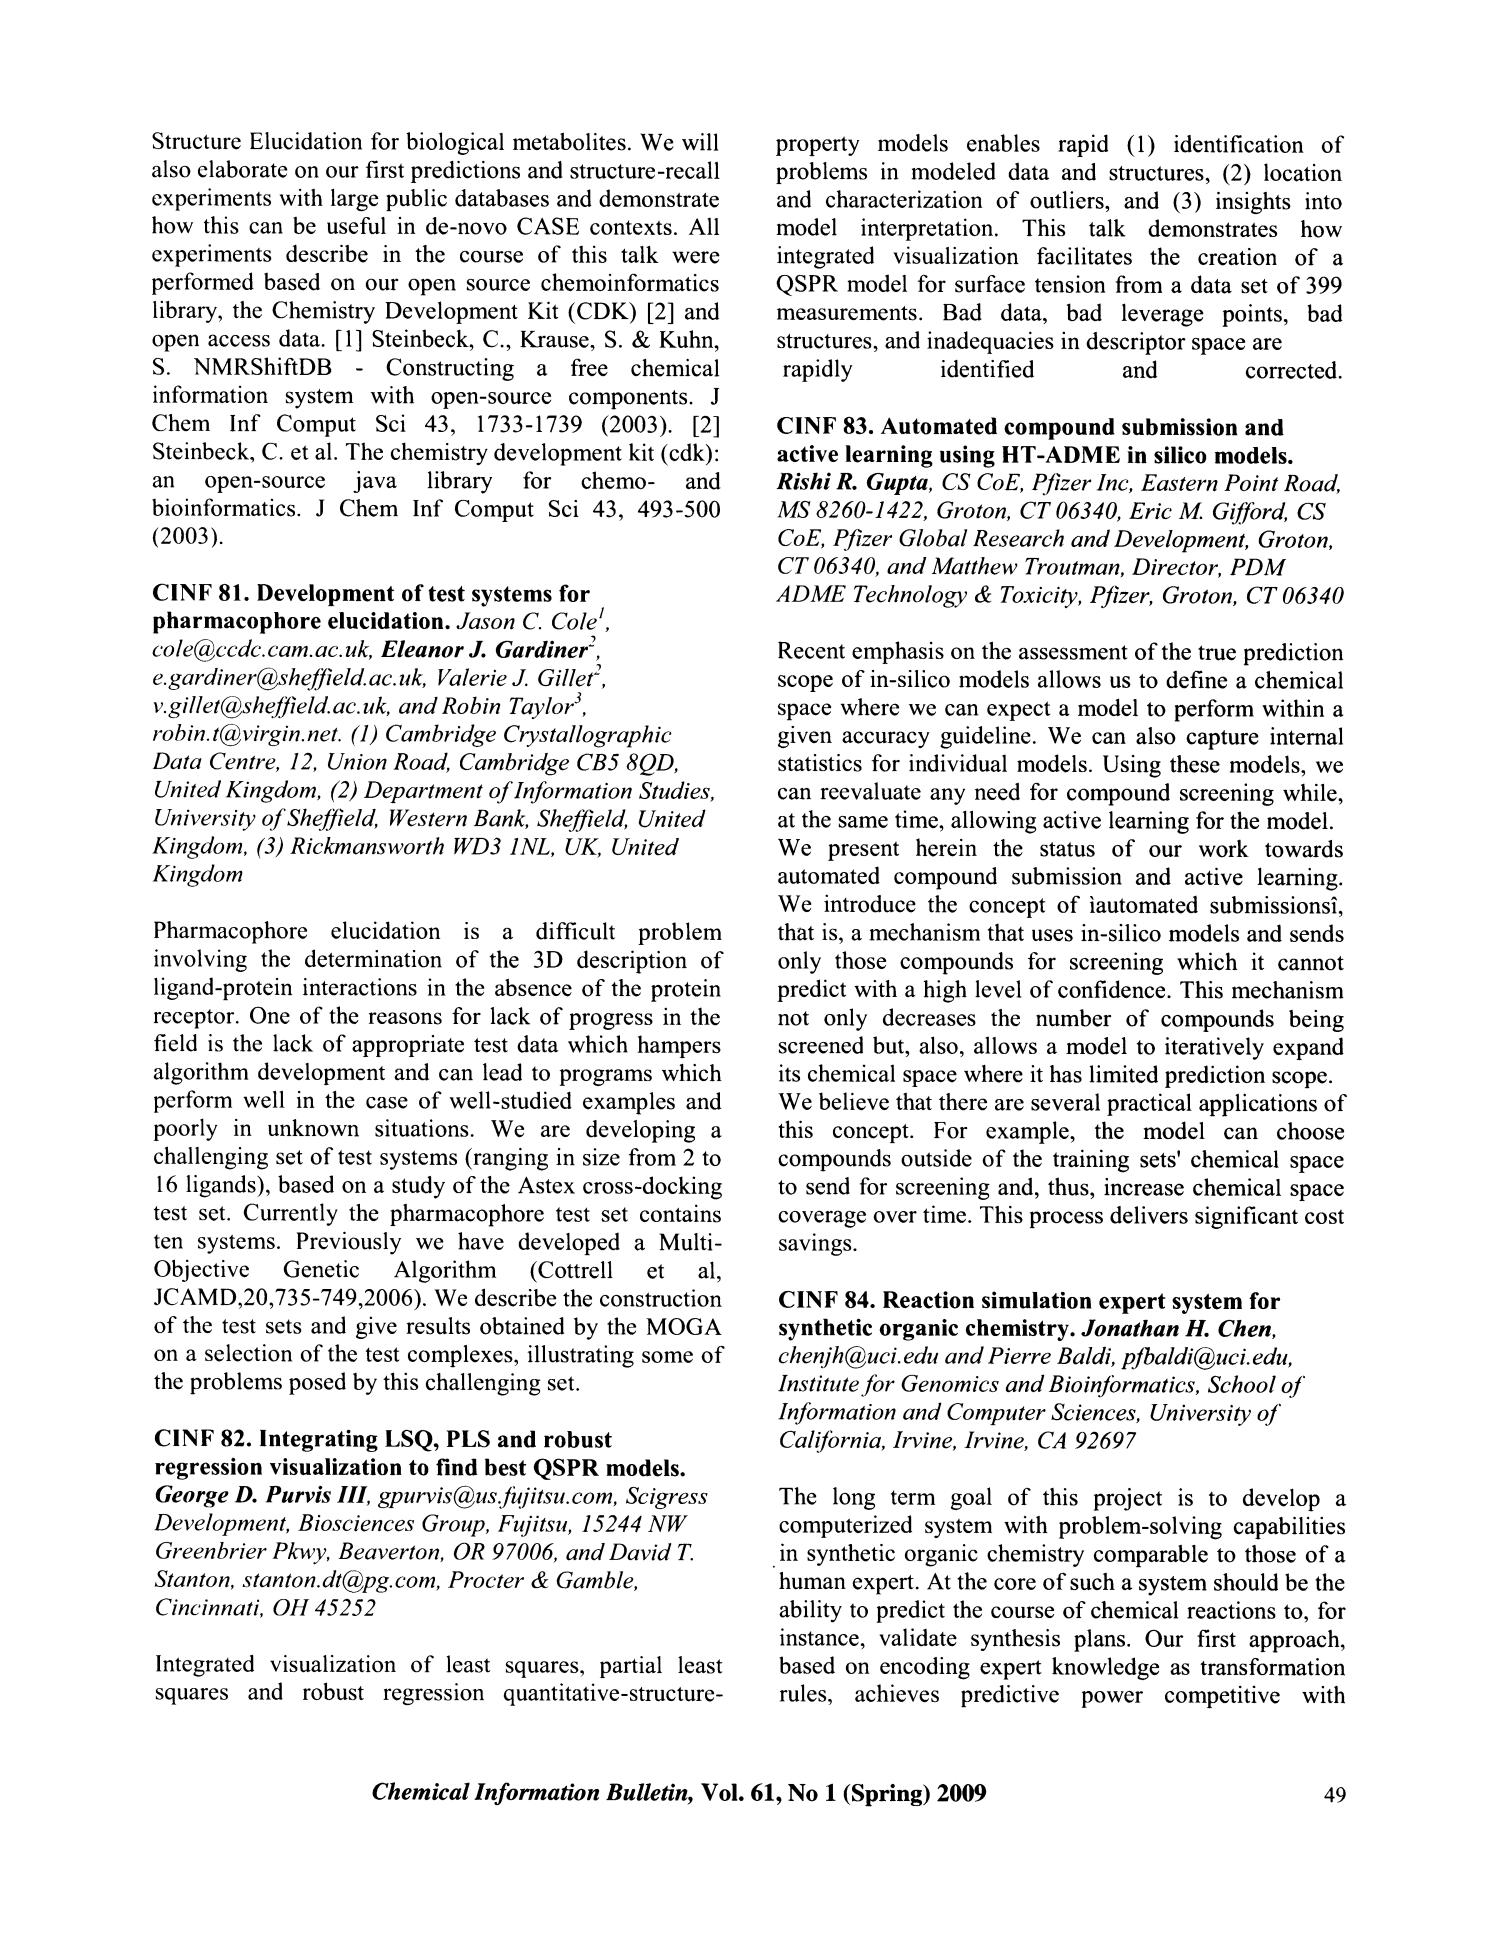 Chemical Information Bulletin, Volume 61, Number 1, Spring